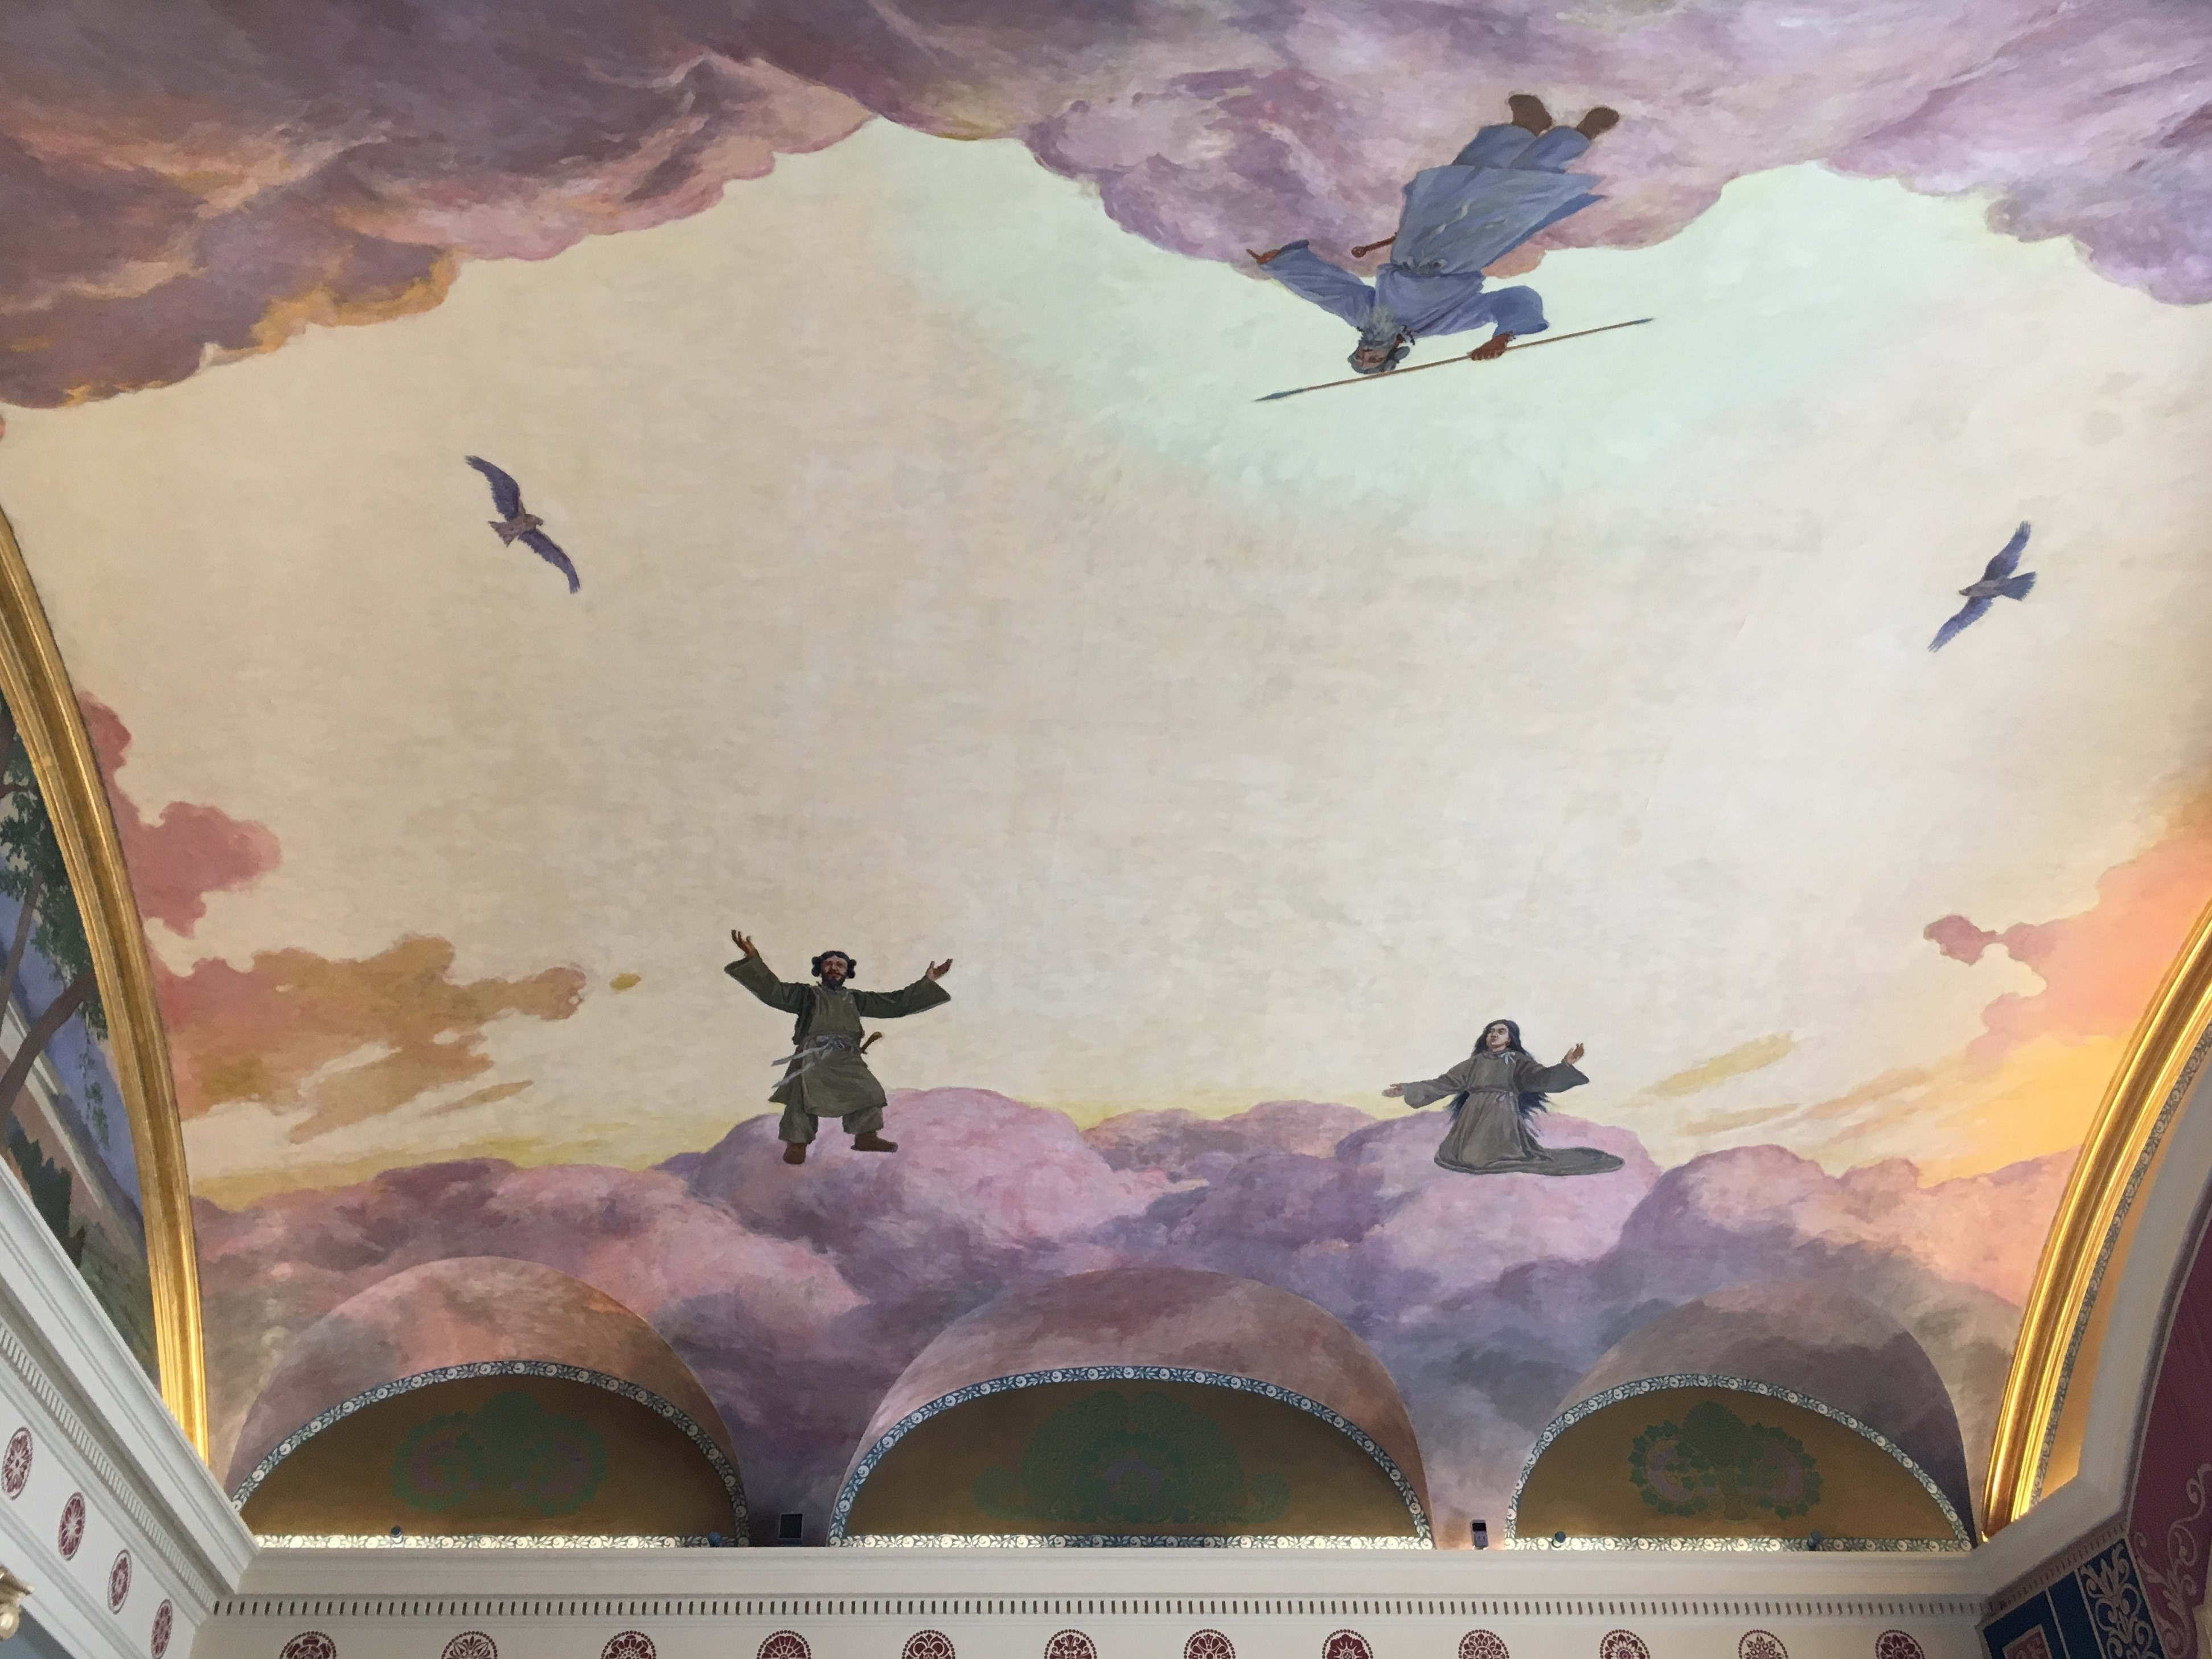 ceiling mural of the Japanese creation myth in whites and pastels